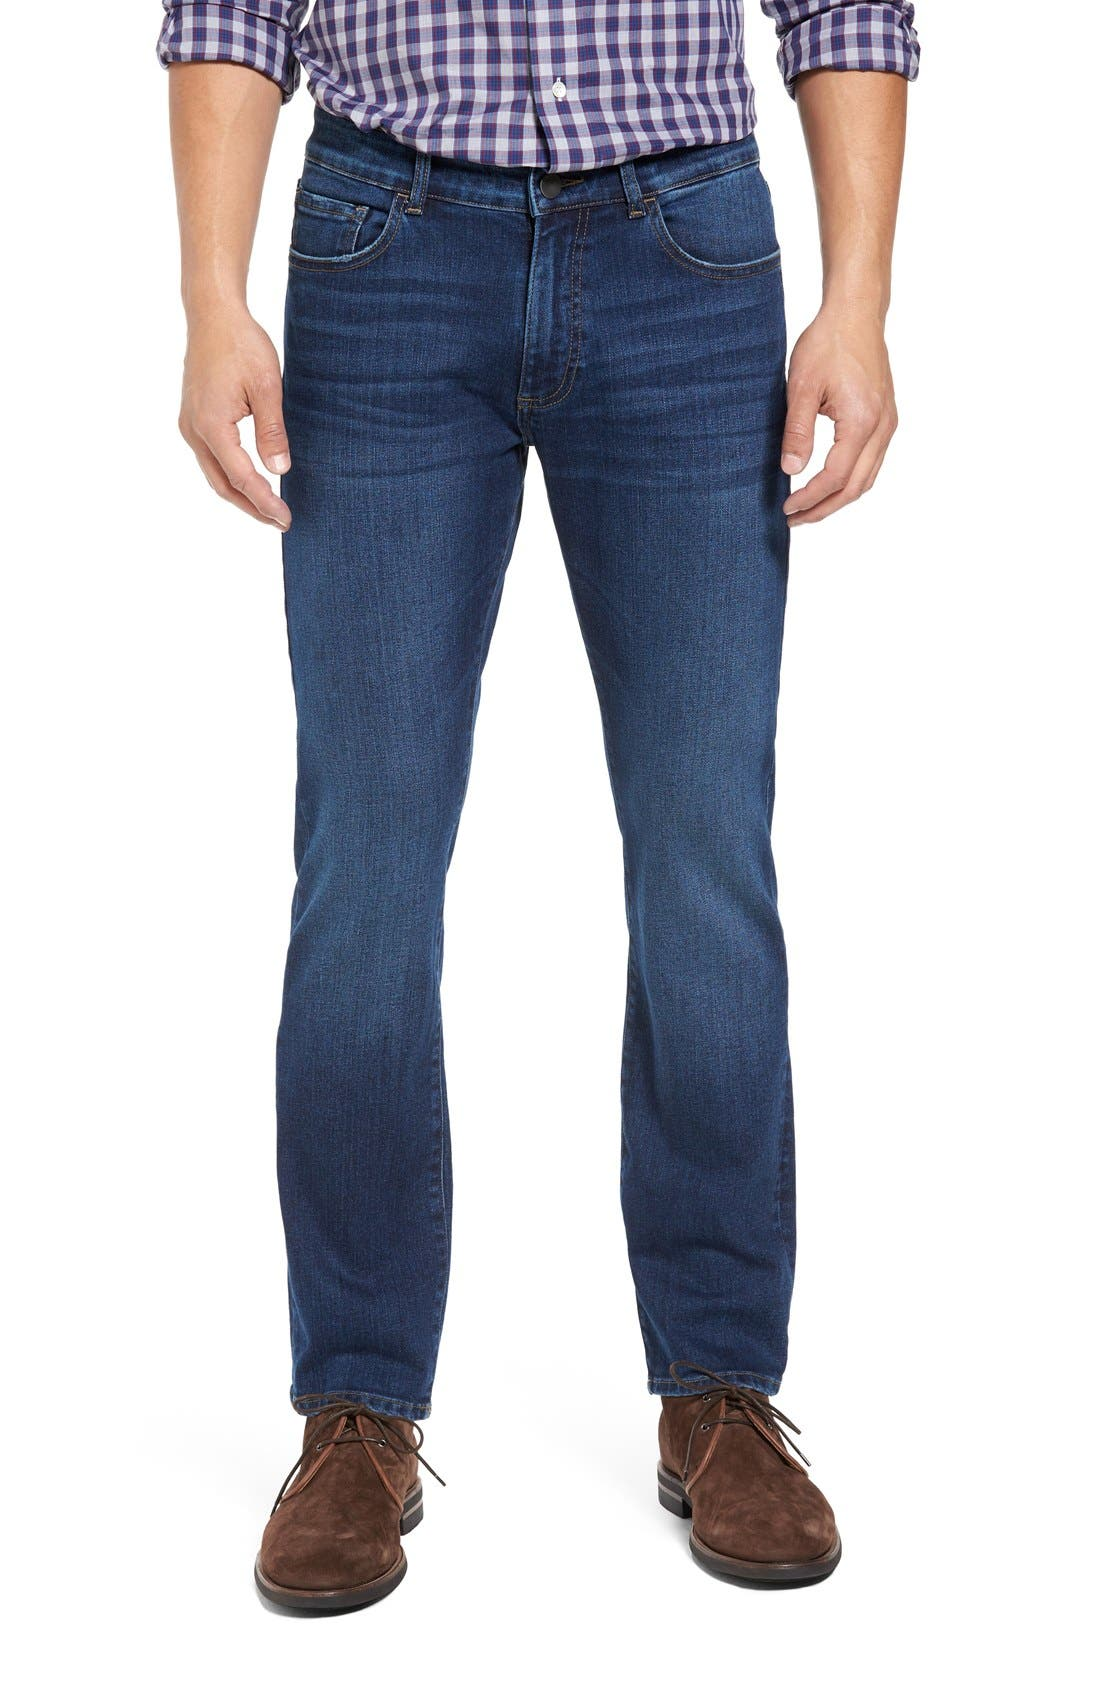 Alternate Image 1 Selected - DL1961 Russel Slim Straight Fit Jeans (Acre)